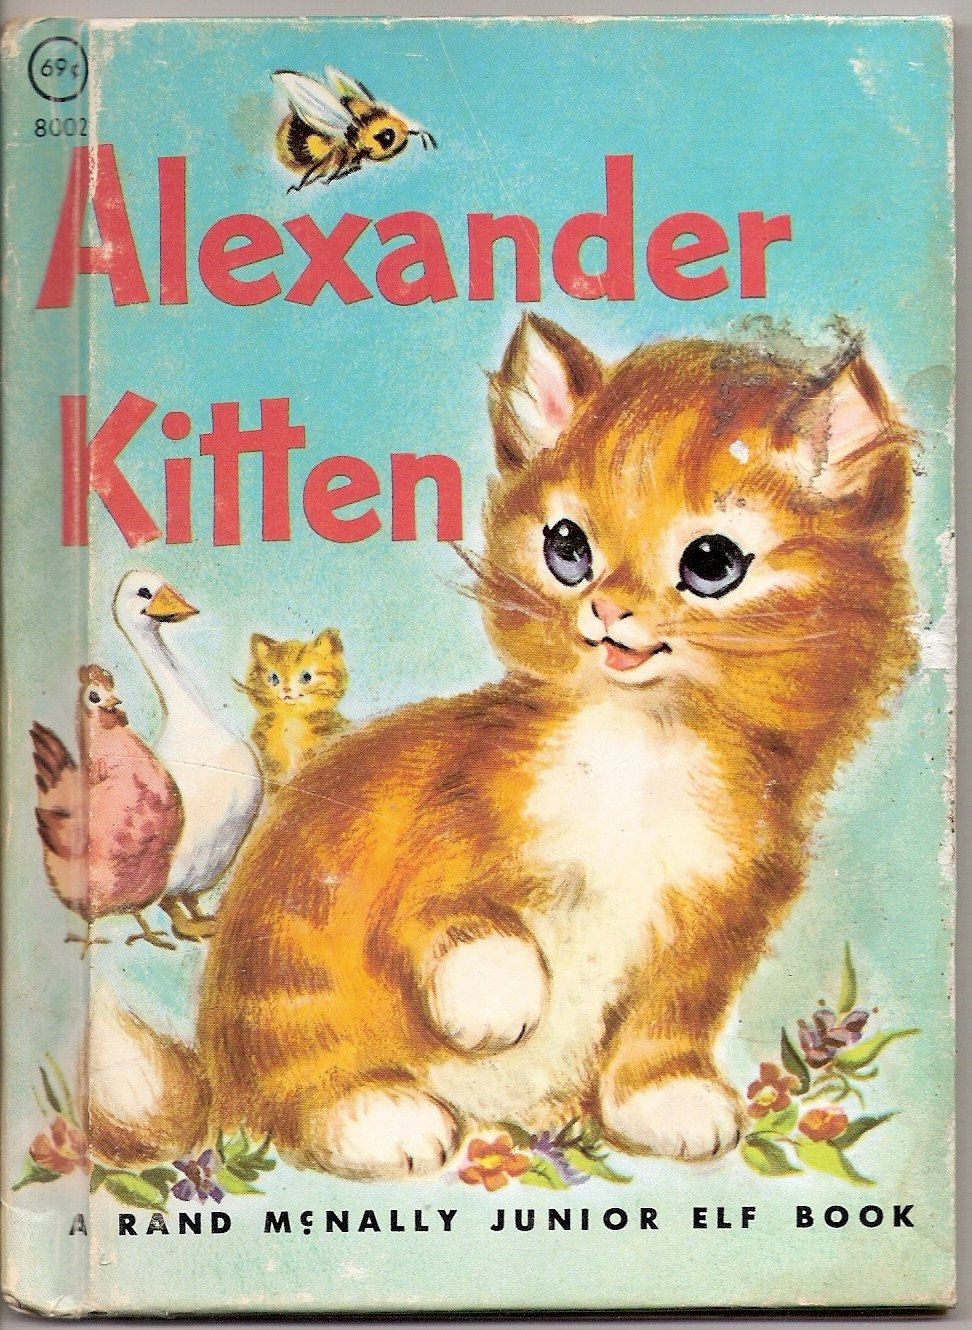 Alexander Kitten Vintage Rand Mcnally Junior Elf Book Illustrated By Marge Opitz 1959 Kittens Vintage Old Children S Books Children S Book Illustration